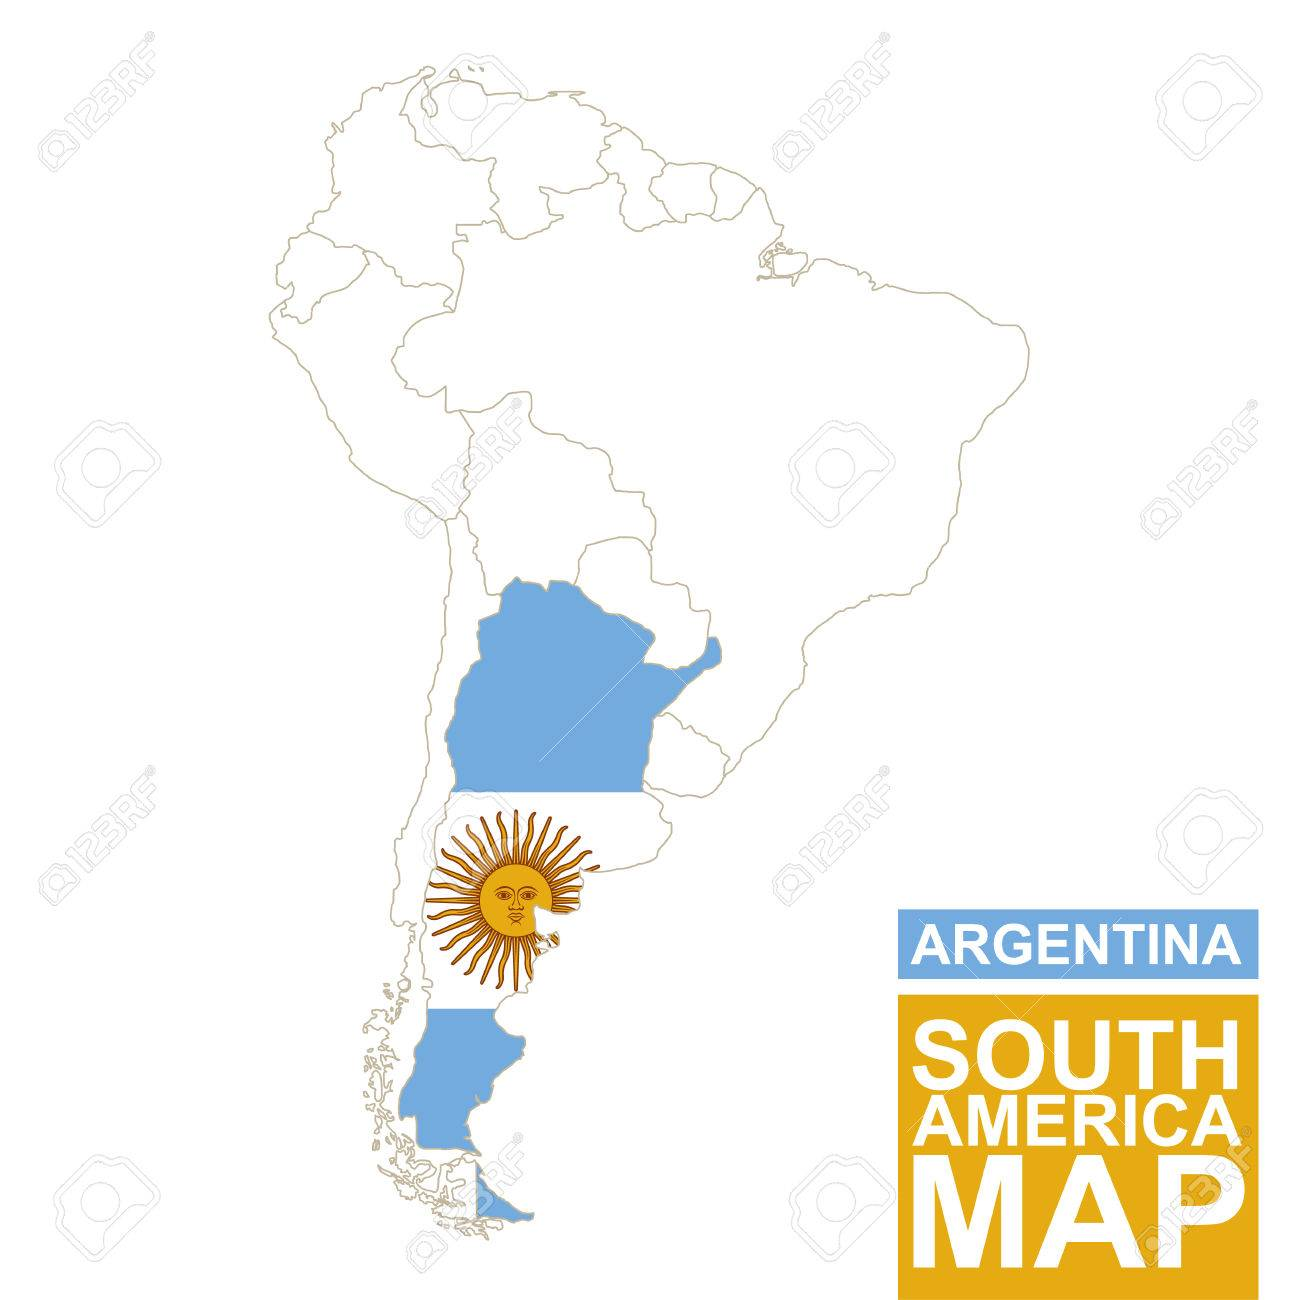 South America Contoured Map With Highlighted Argentina. Argentina ...